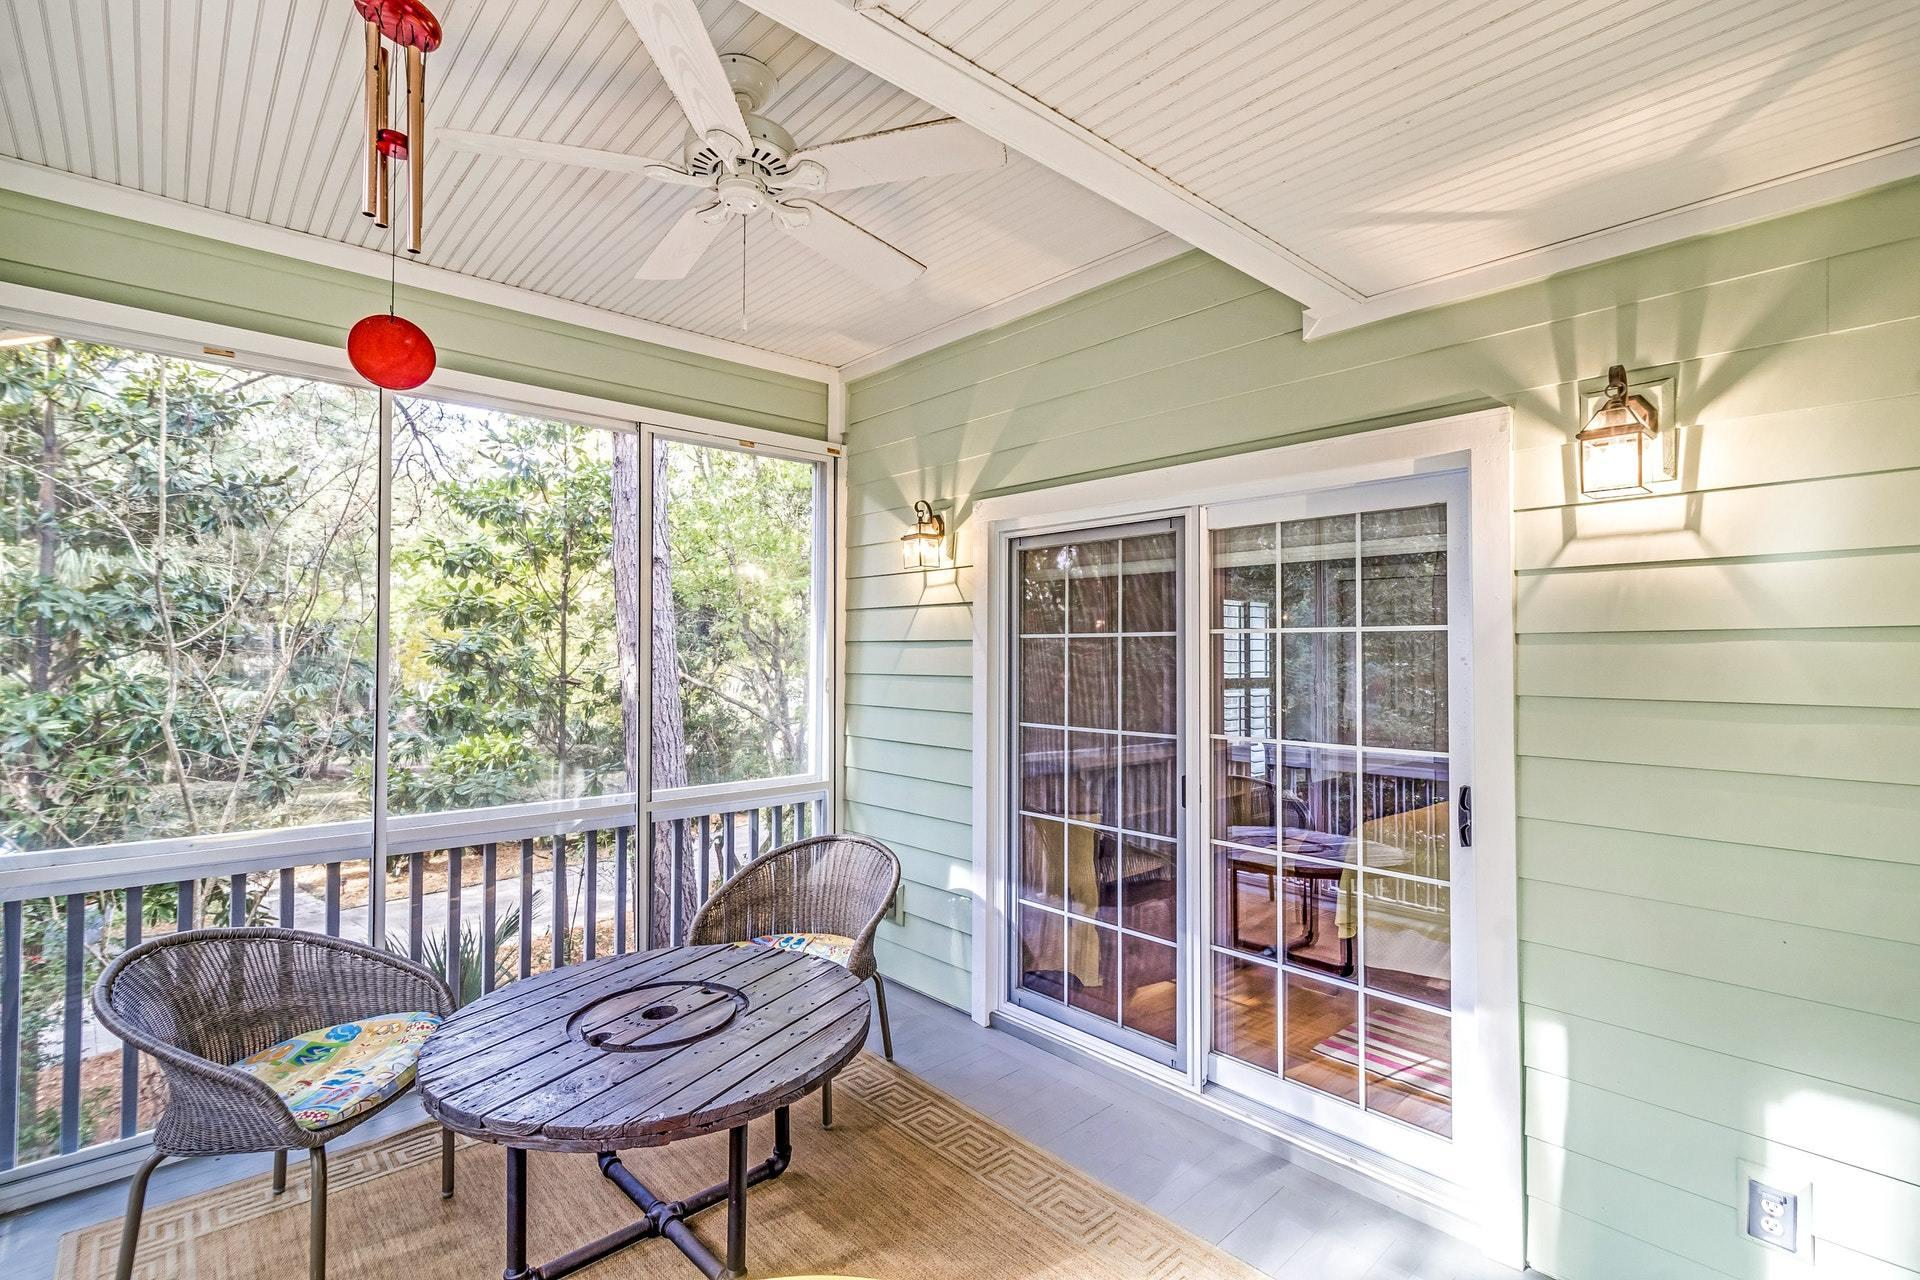 Wild Dunes Homes For Sale - 28 Edgewater Alley, Isle of Palms, SC - 9